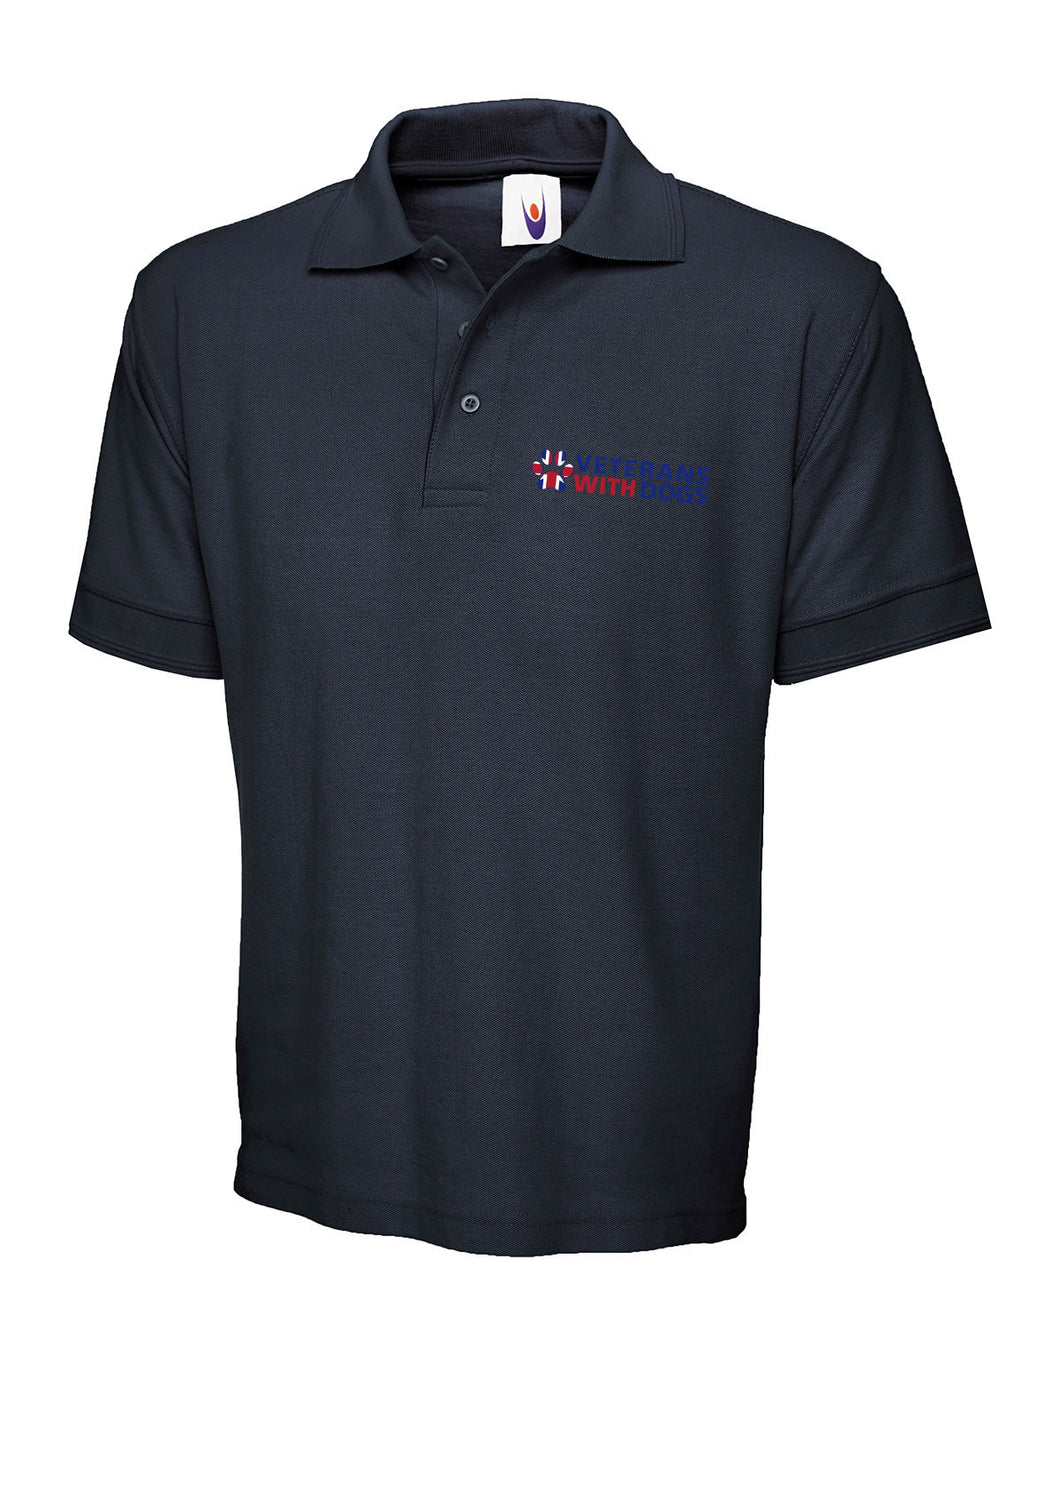 Premium Polo Shirt - Veterans With Dogs (VWD) Shop